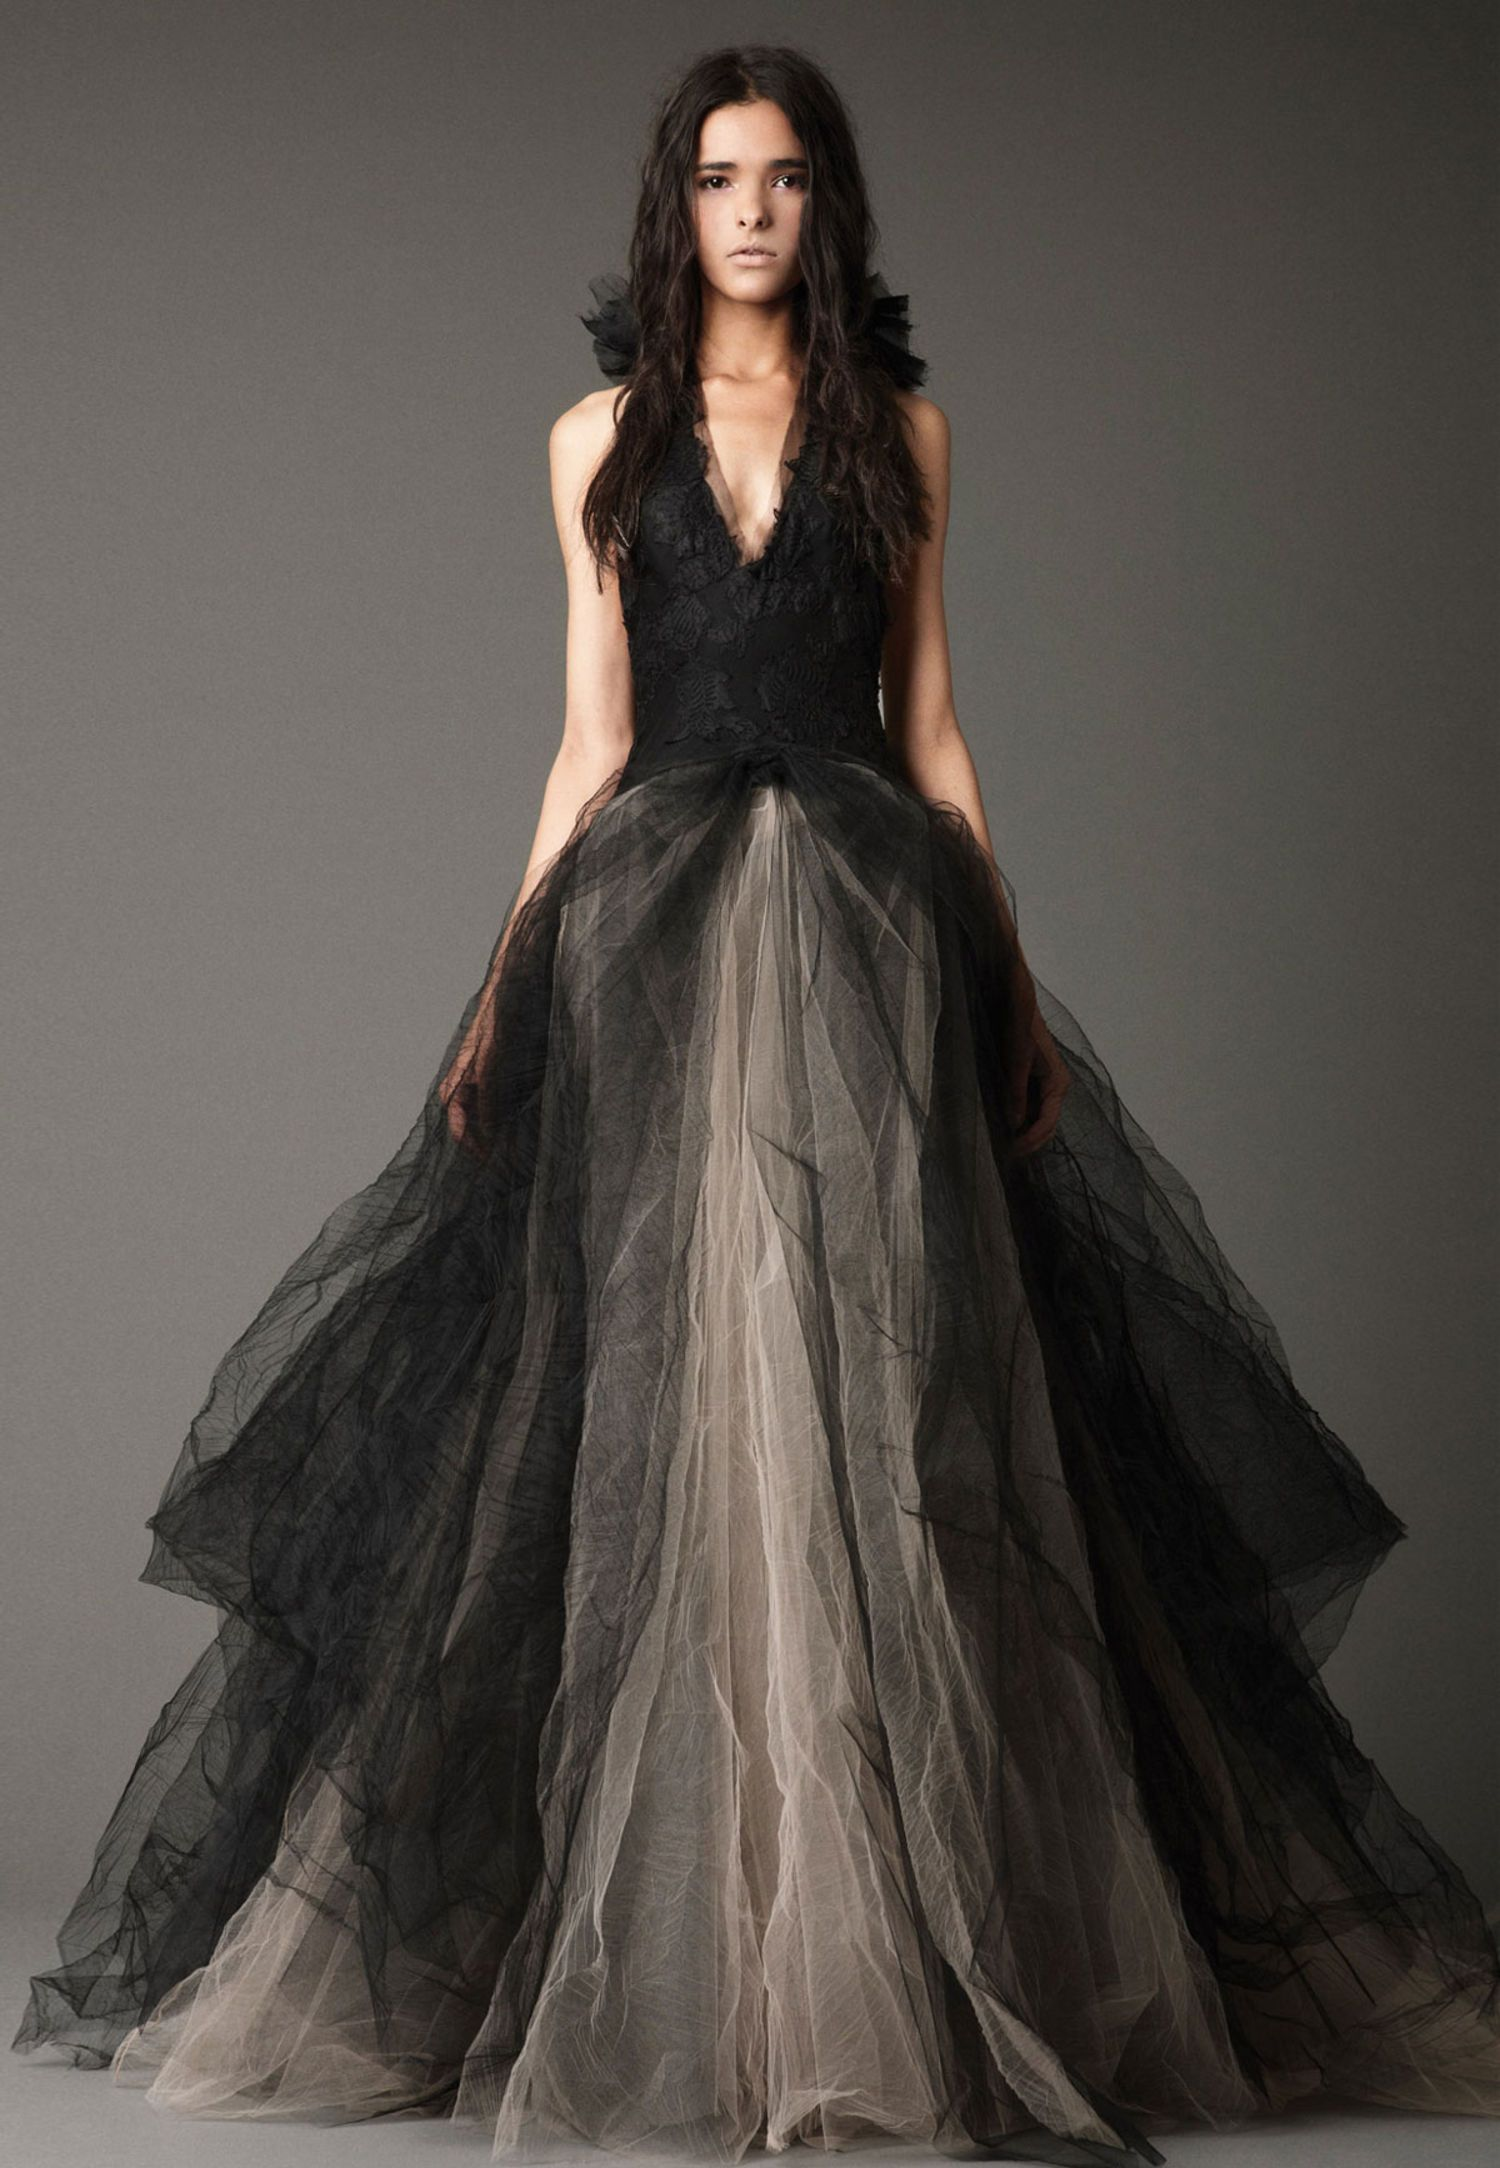 Abiti Da Sera Vera Wang.Shenae Grimes Wedding Dress The Bride Wore One Of The Black Vera